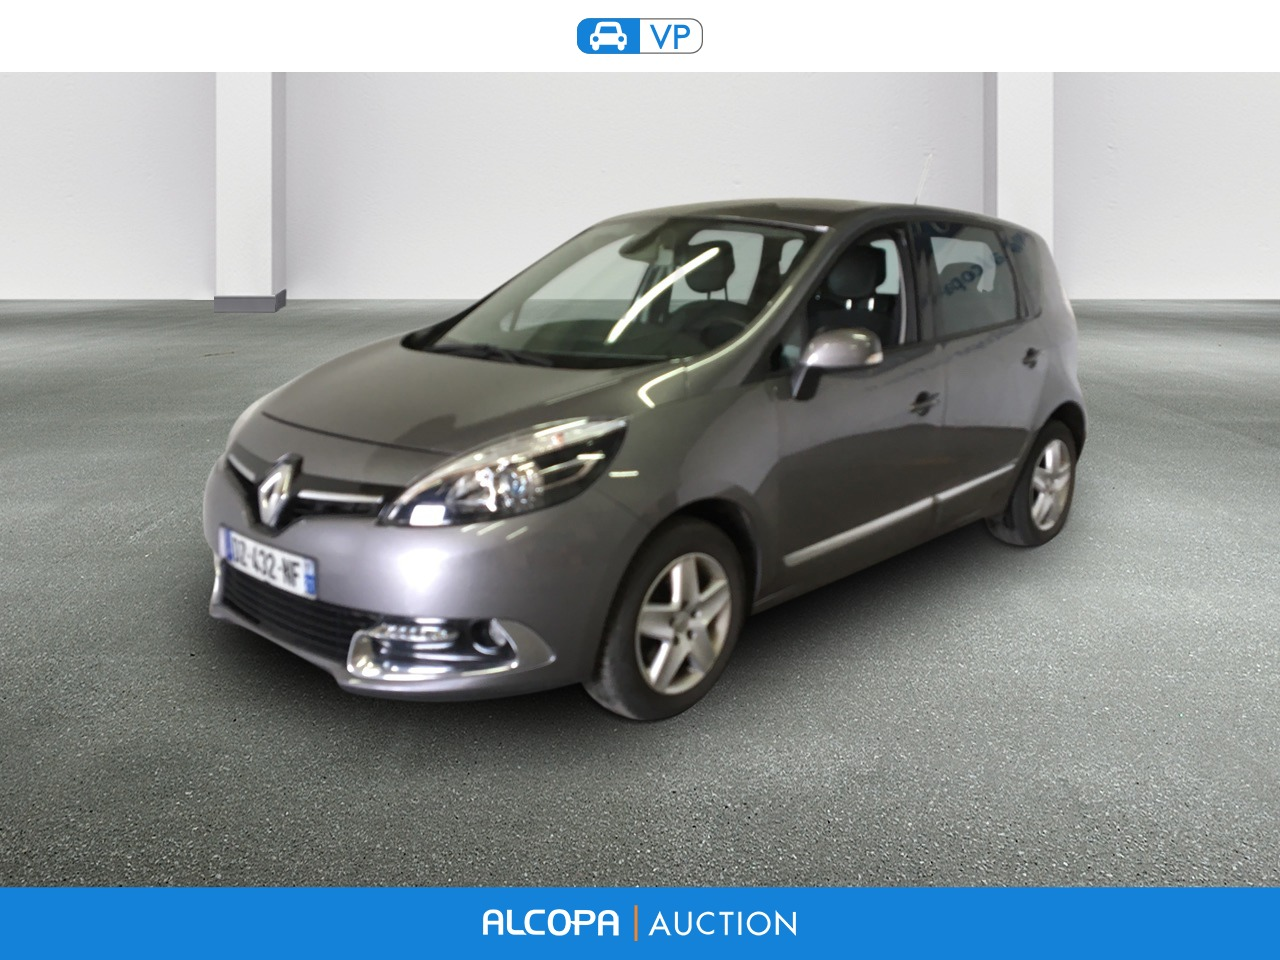 renault scenic iii business scenic dci 110 energy eco2 business alcopa auction. Black Bedroom Furniture Sets. Home Design Ideas